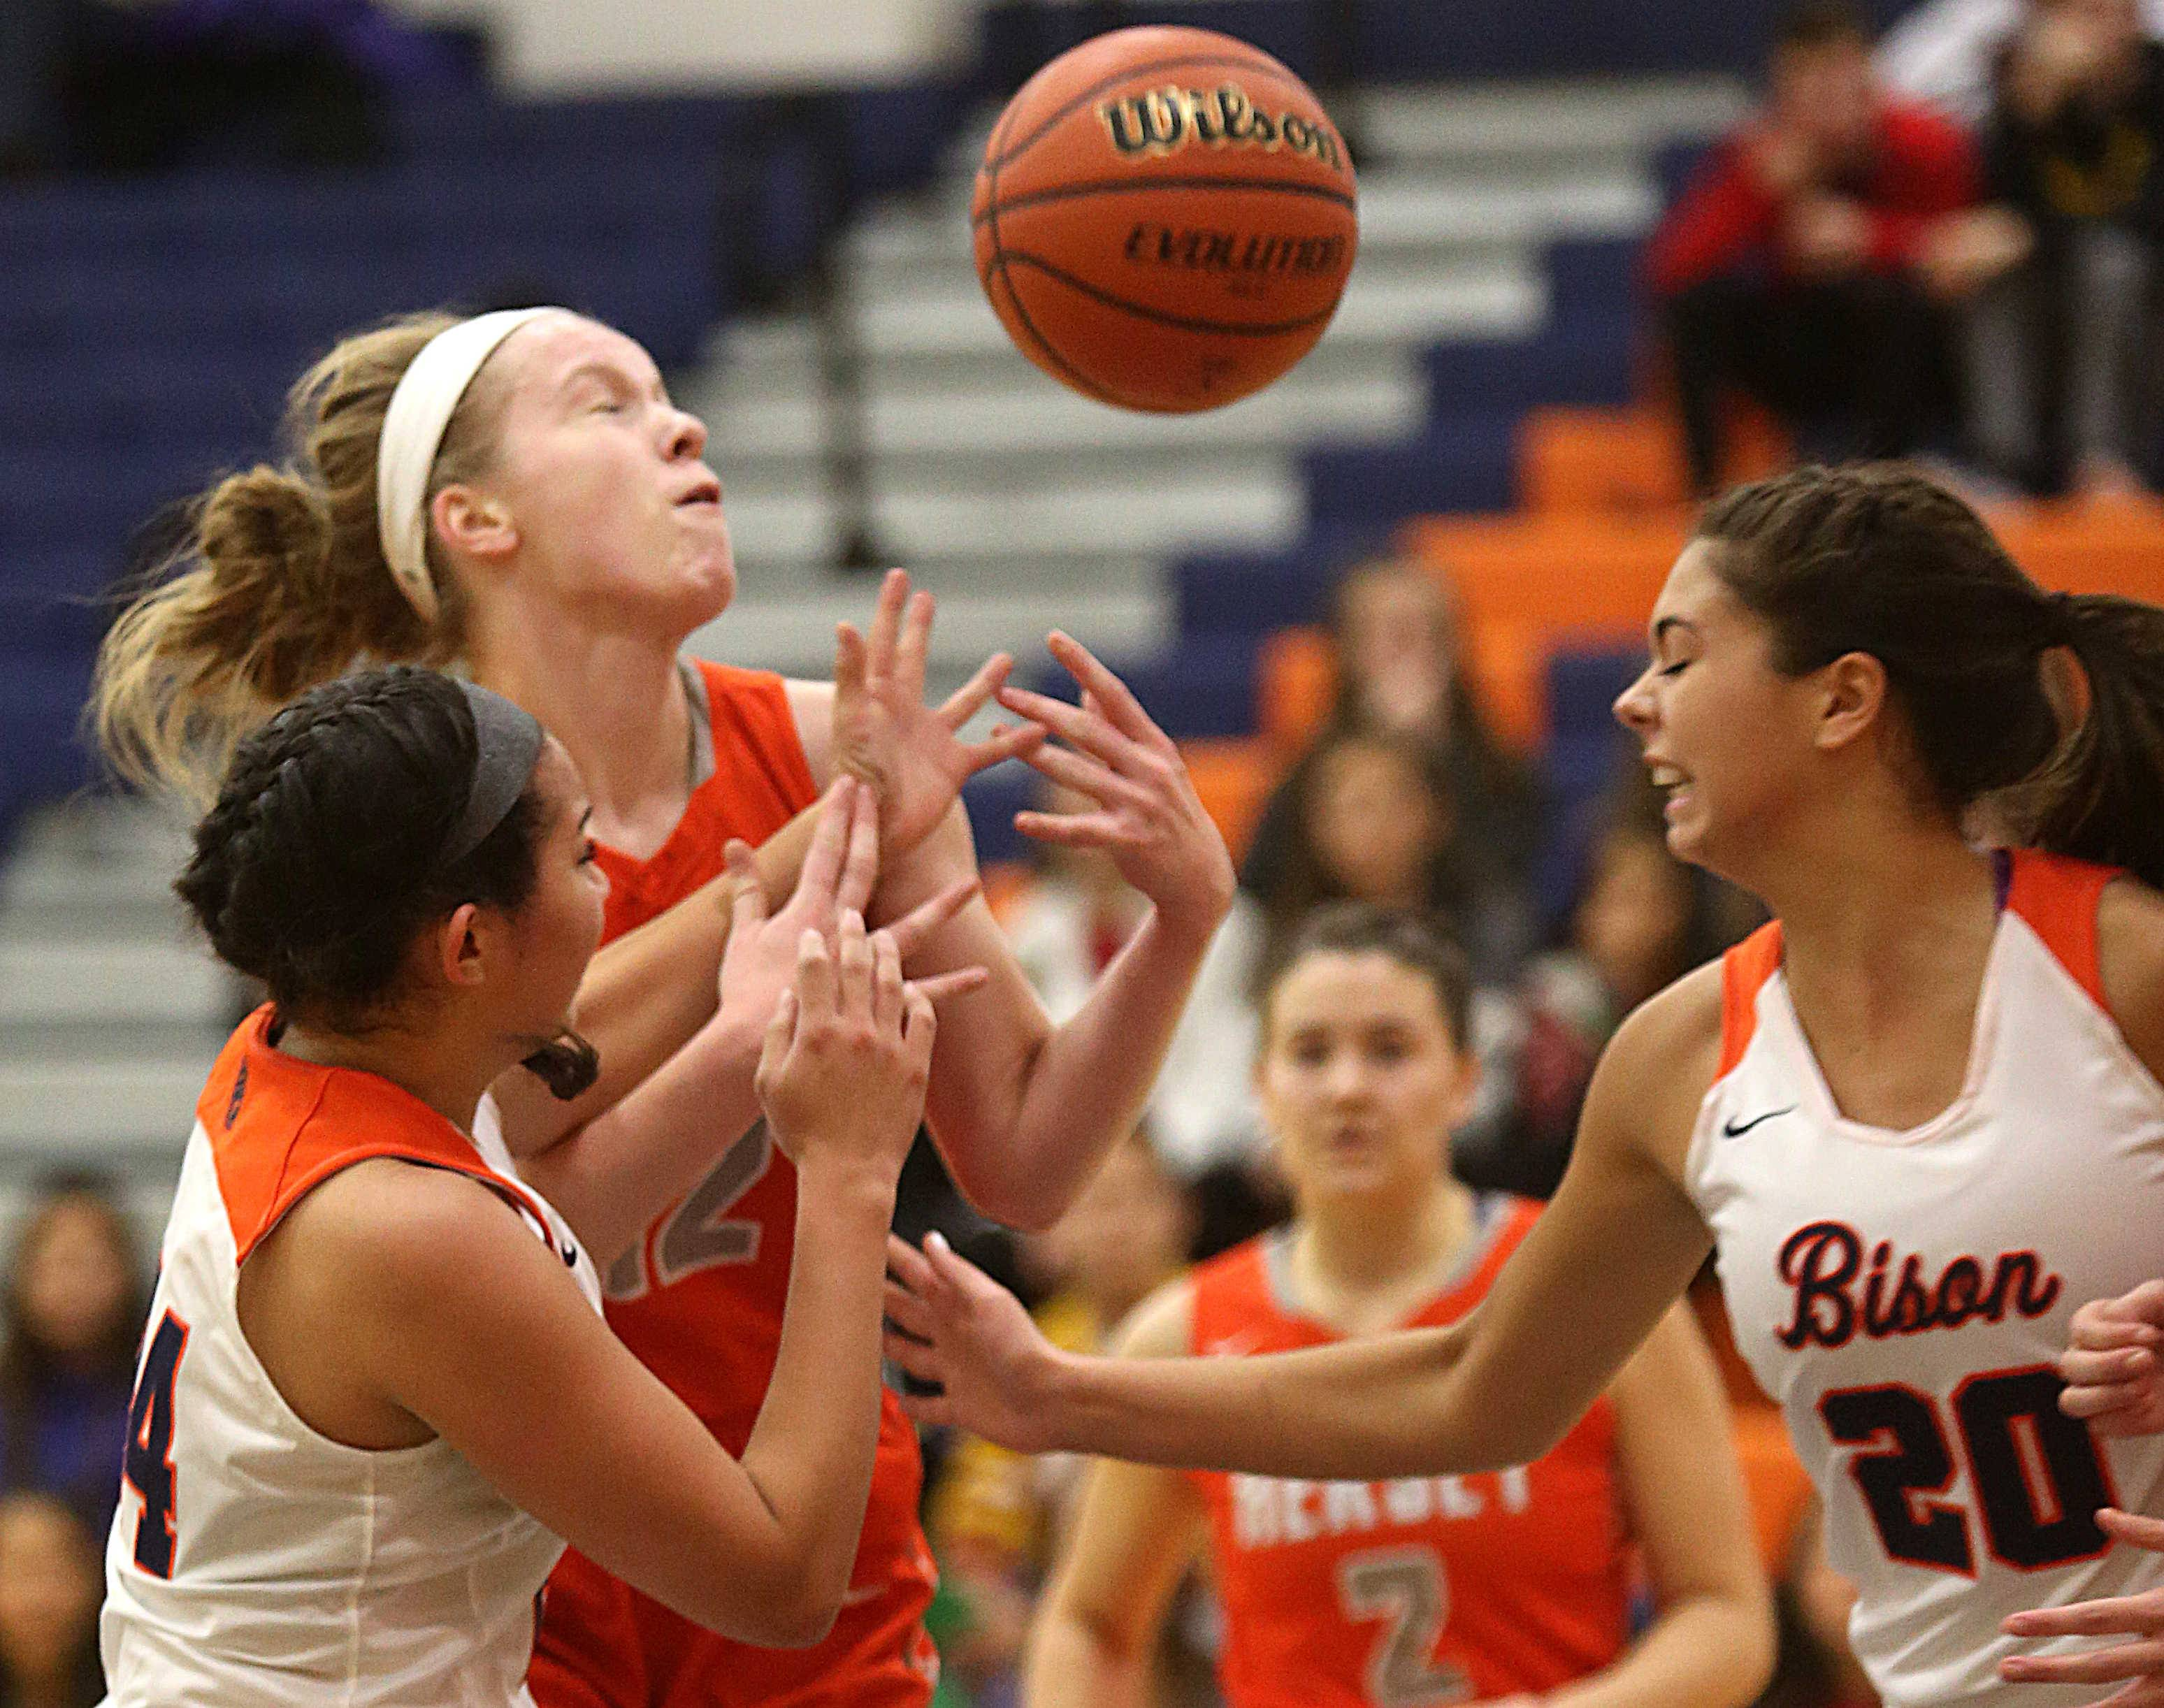 Battling for the ball are, from left, Buffalo Grove's Alyssa Floro, Hersey's Claire Gritt and Buffalo Grove's Kendall Prochaska during varsity basketball action at Buffalo Grove on Friday night.